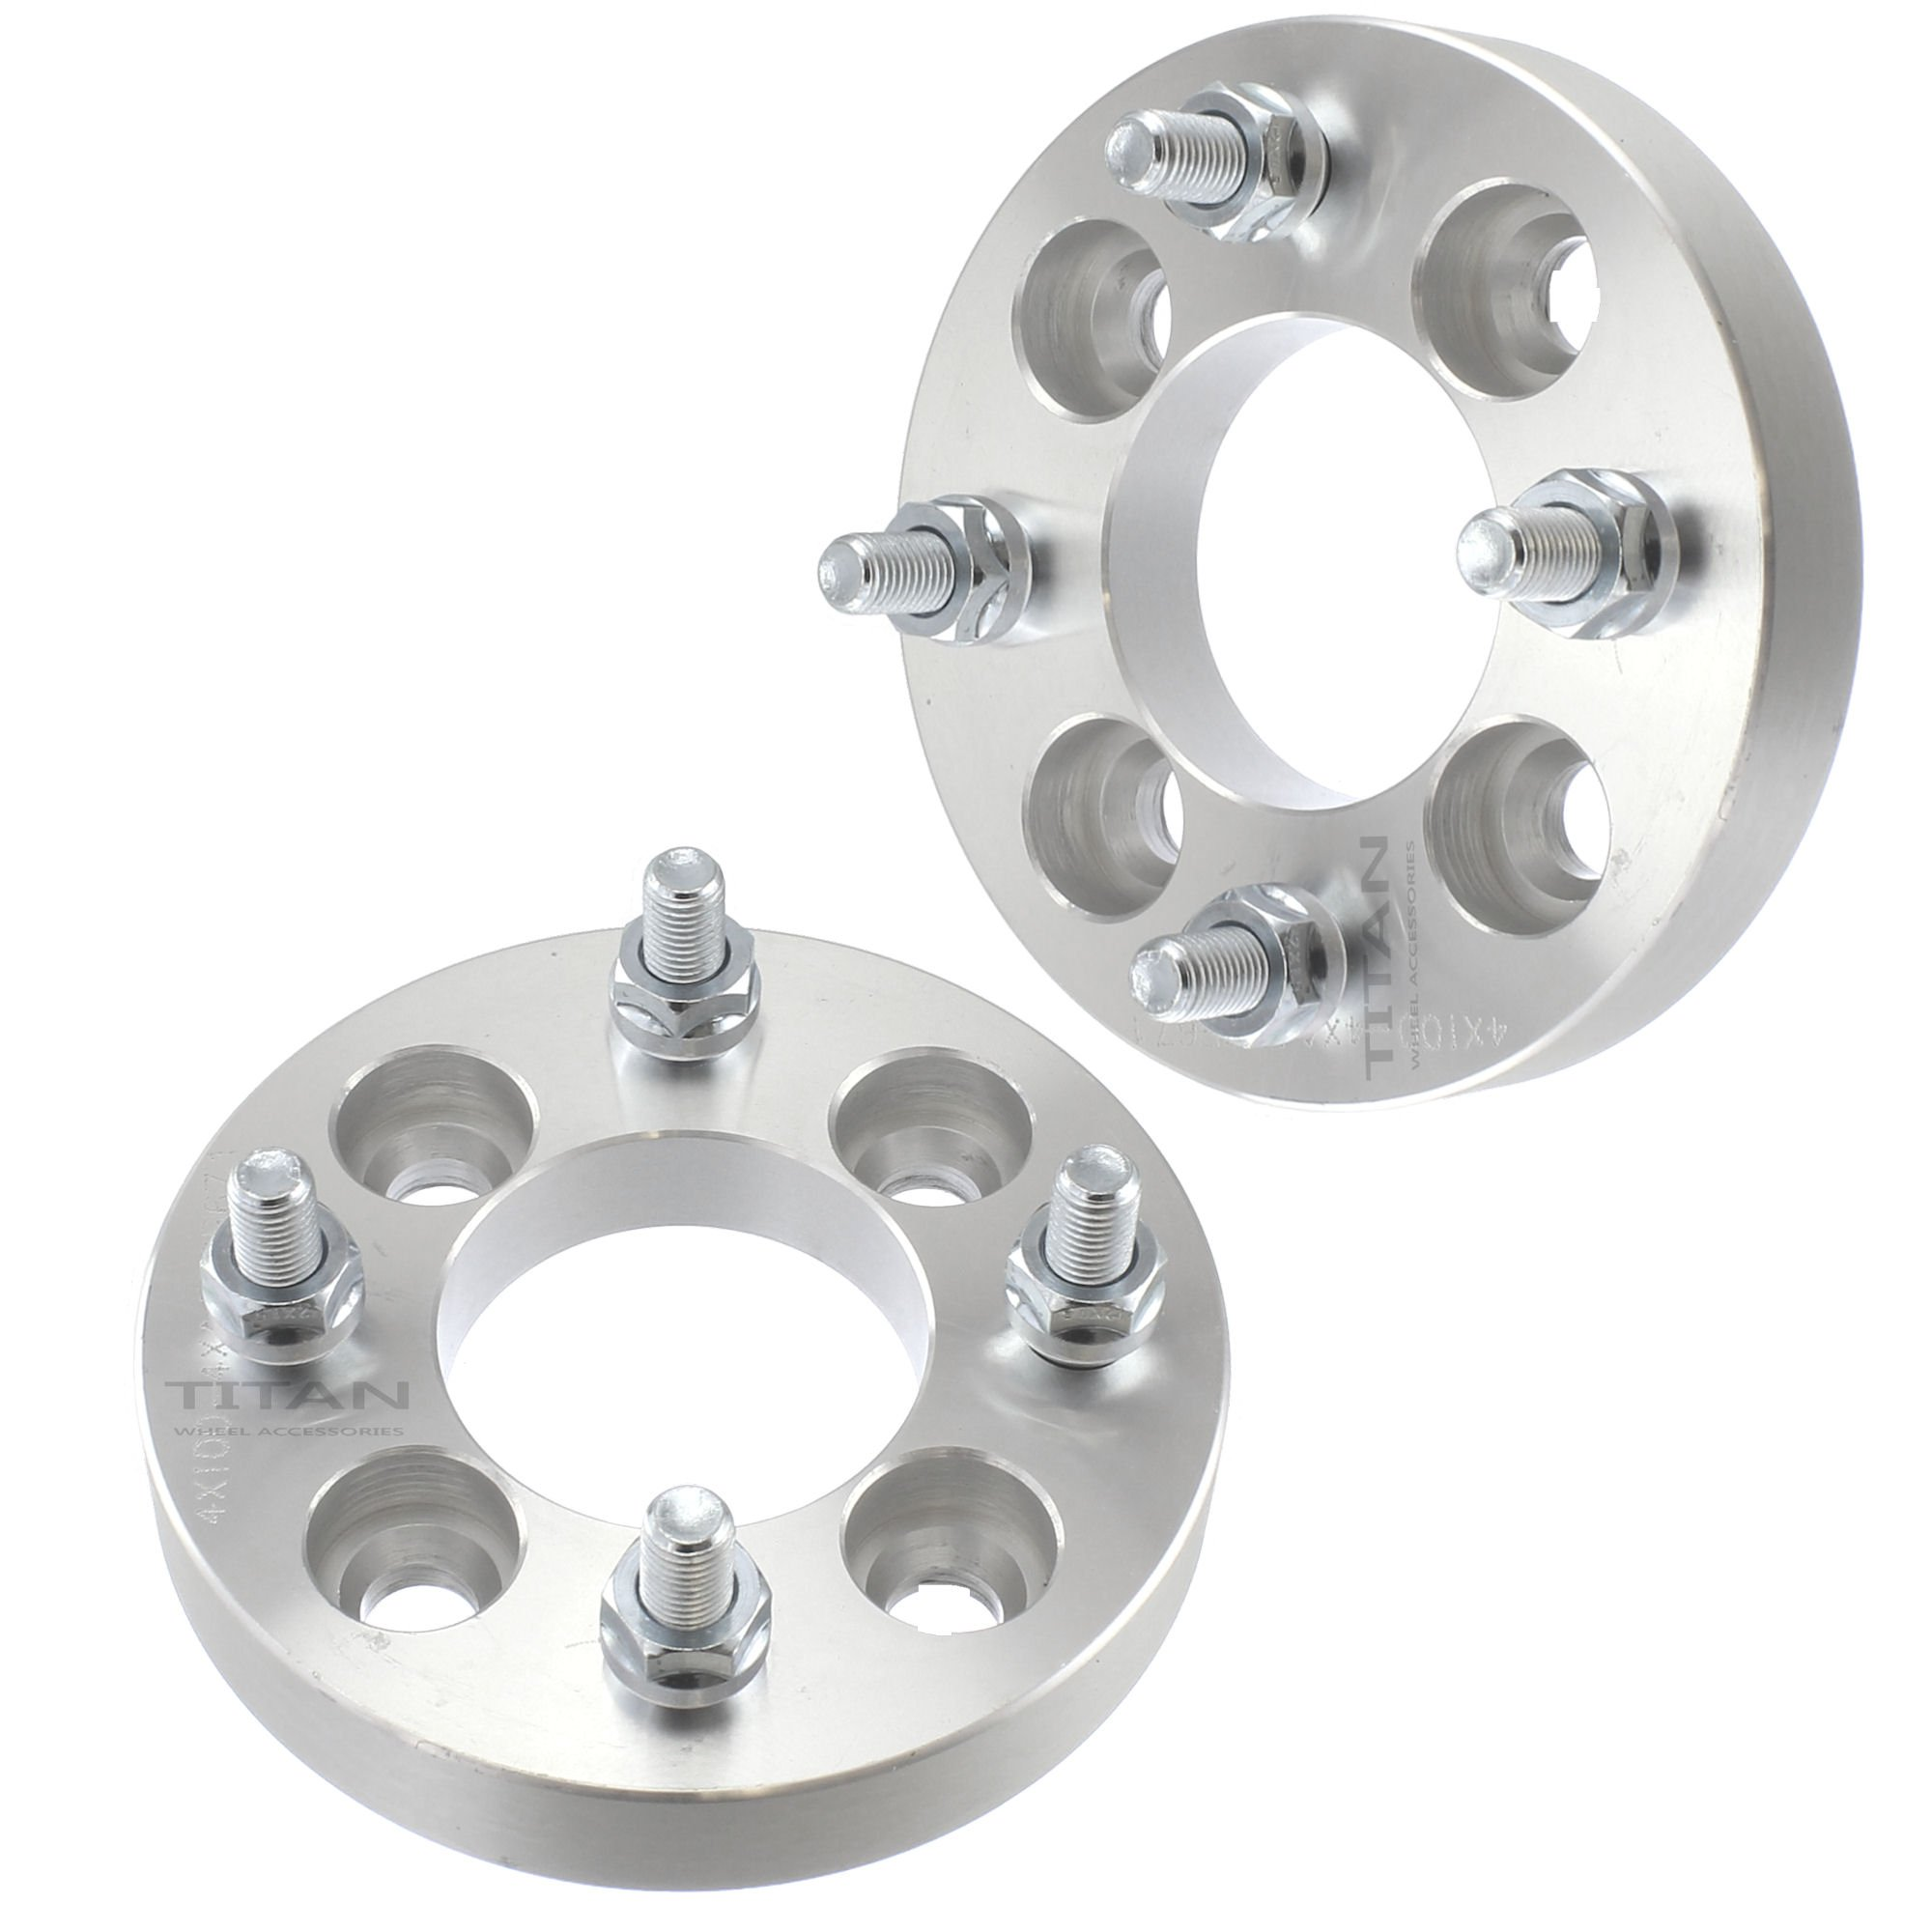 2pc 1.0'' Thick | 4x4 to 4x4 Wheel Spacers fits EZ GO EZGO Club Car Golf Cart 25mm Overall Width